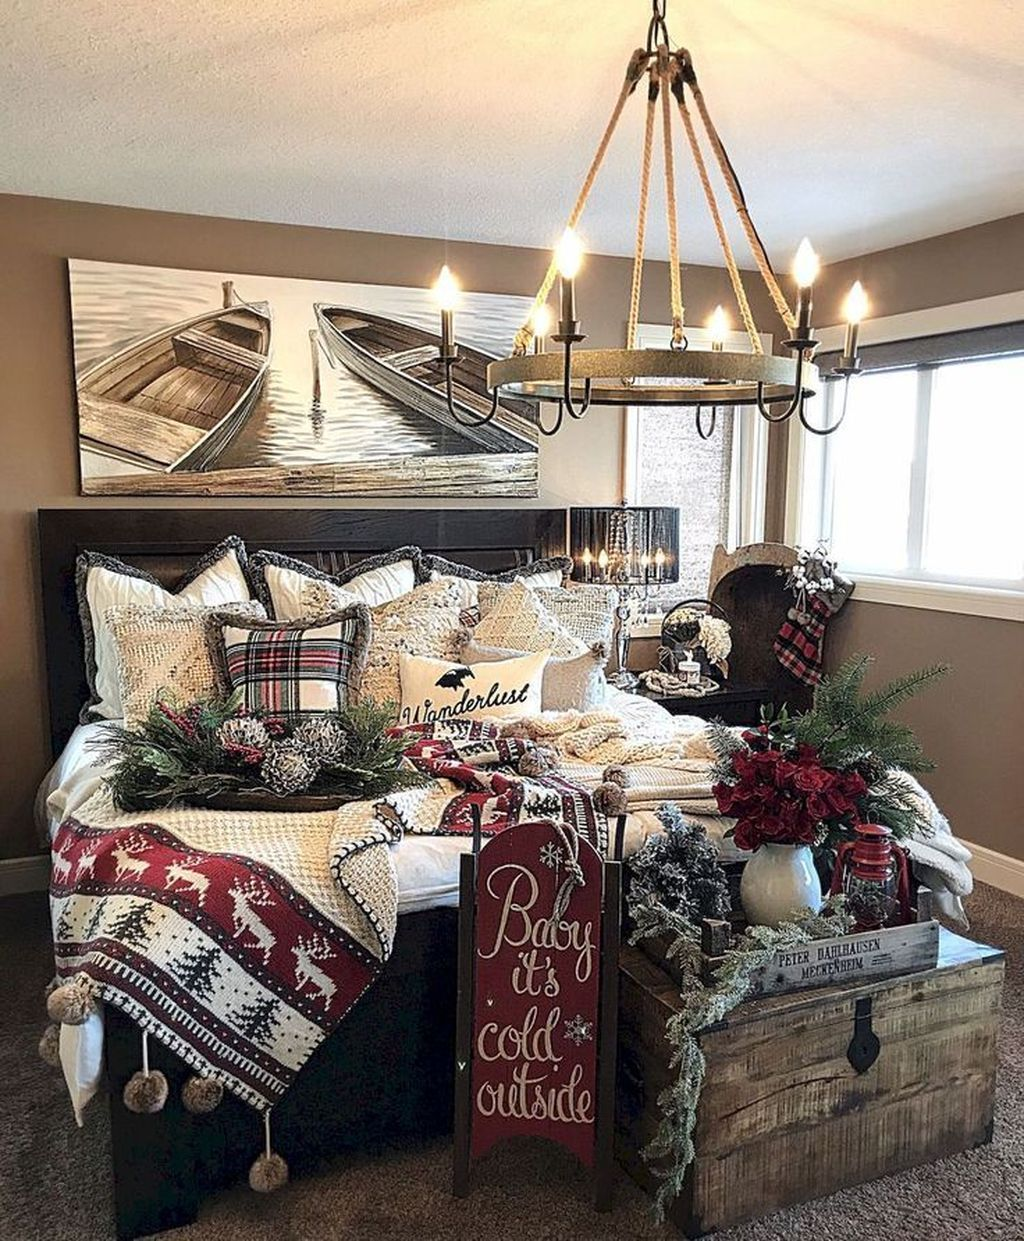 56 Easy DIY Christmas Decorations Ideas For Bedroom